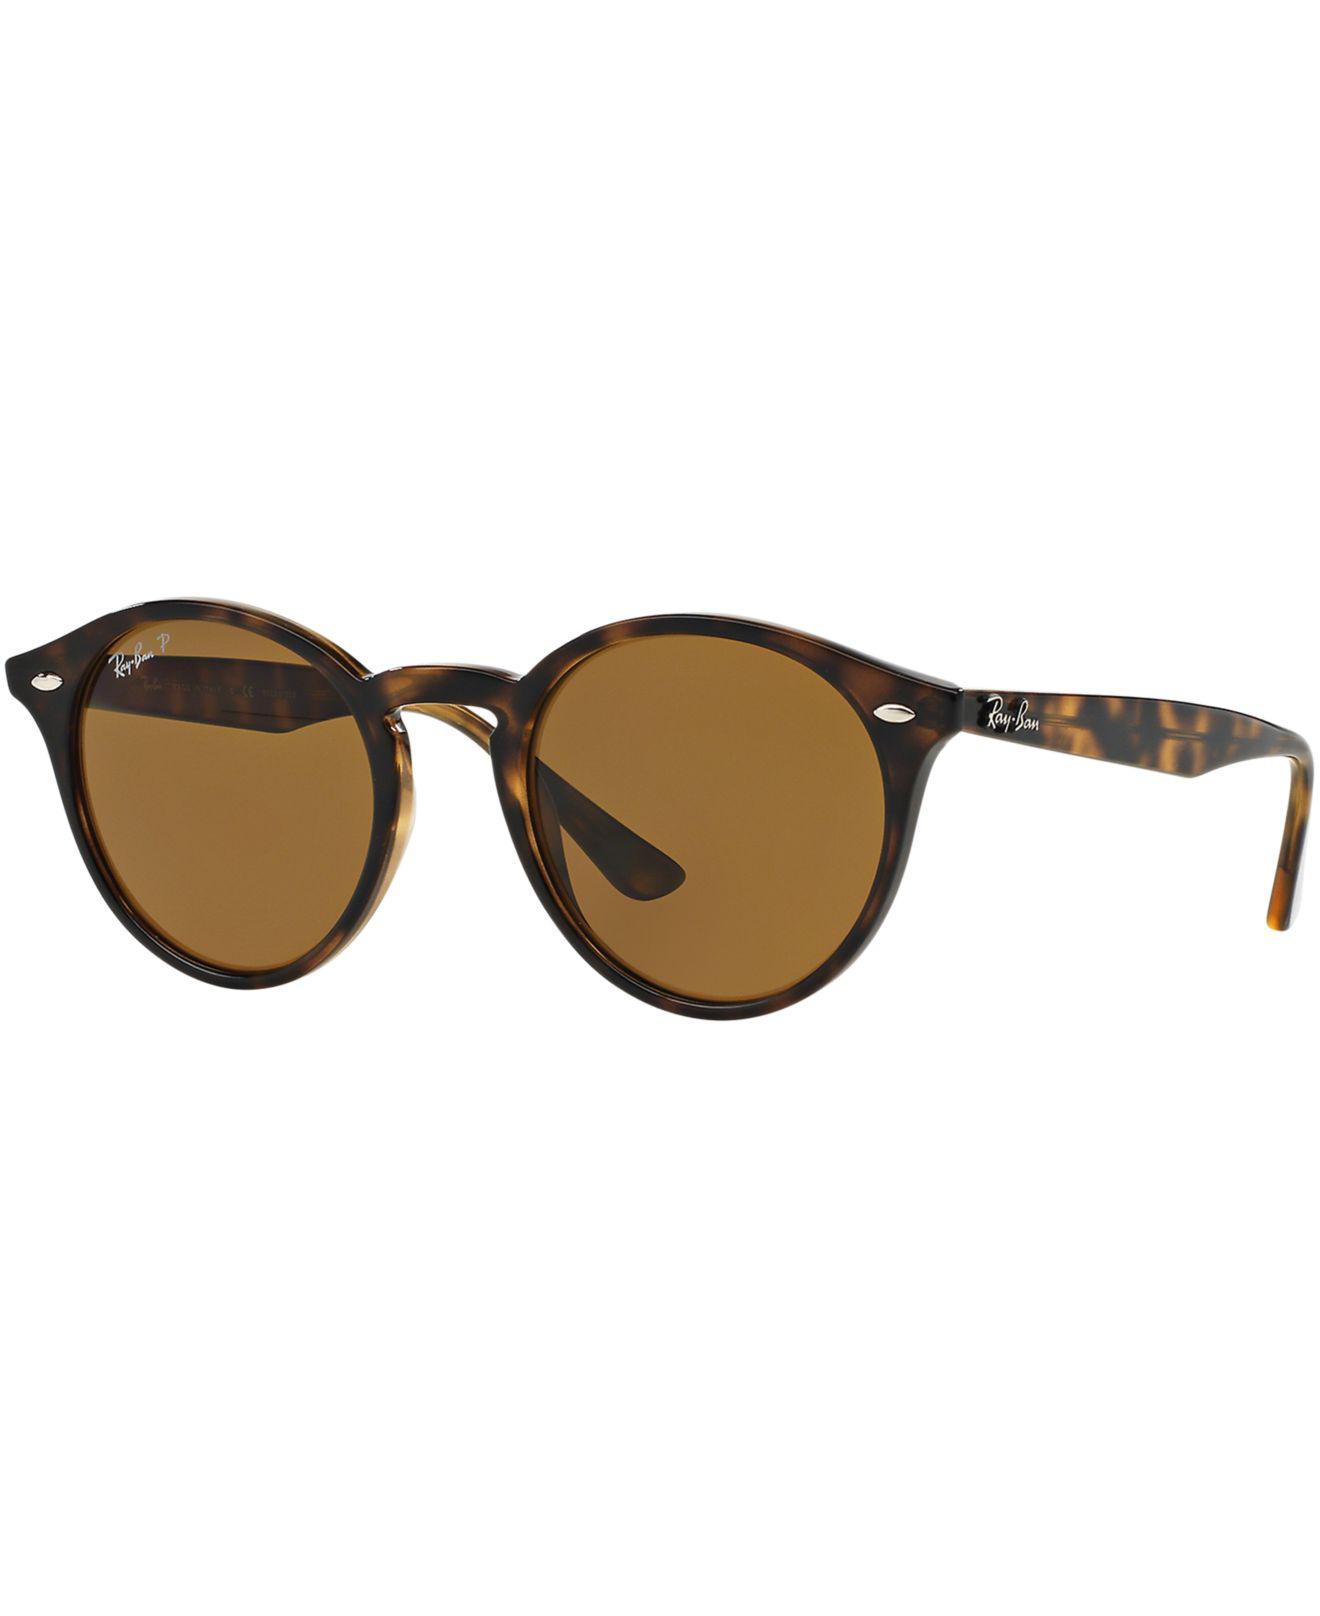 7963e8fbc37 ... promo code for lyst ray ban sunglasses rb2180 710 83 in brown for men  acb4c 68a8f ...